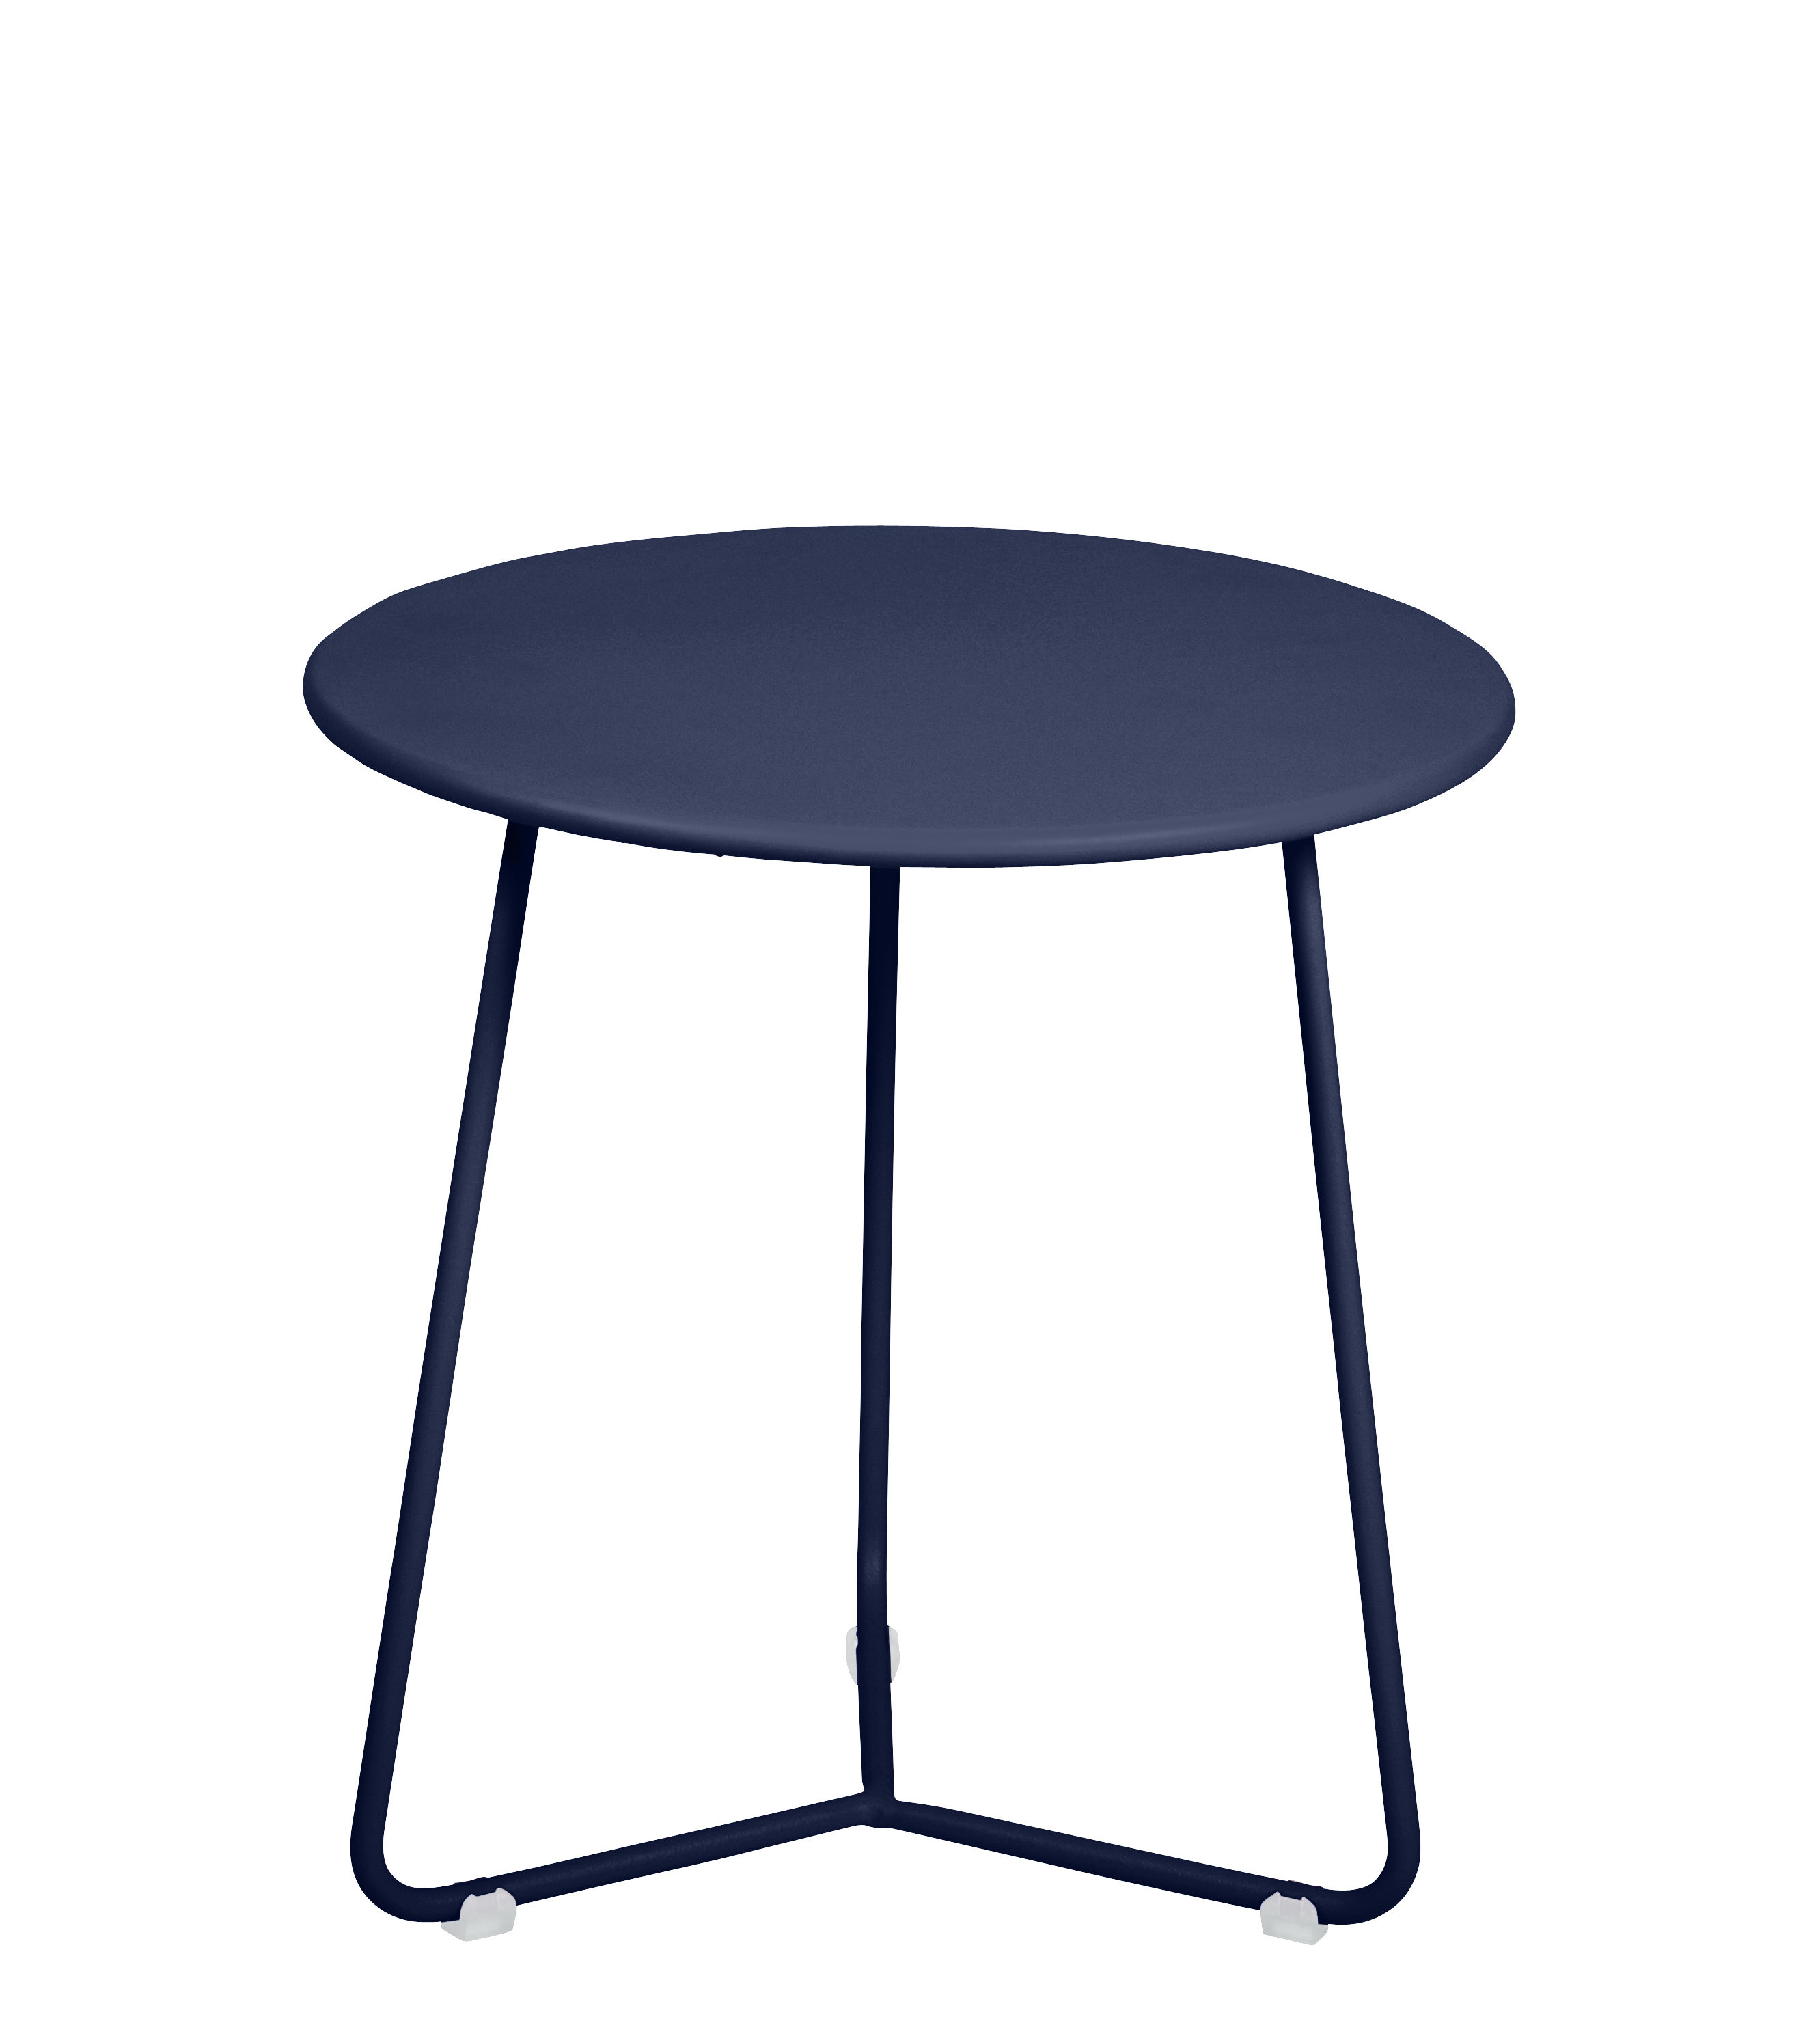 Furniture - Coffee Tables - Cocotte End table - / Stool - Ø 34 x H 36 cm by Fermob - Ocean Blue - Painted steel